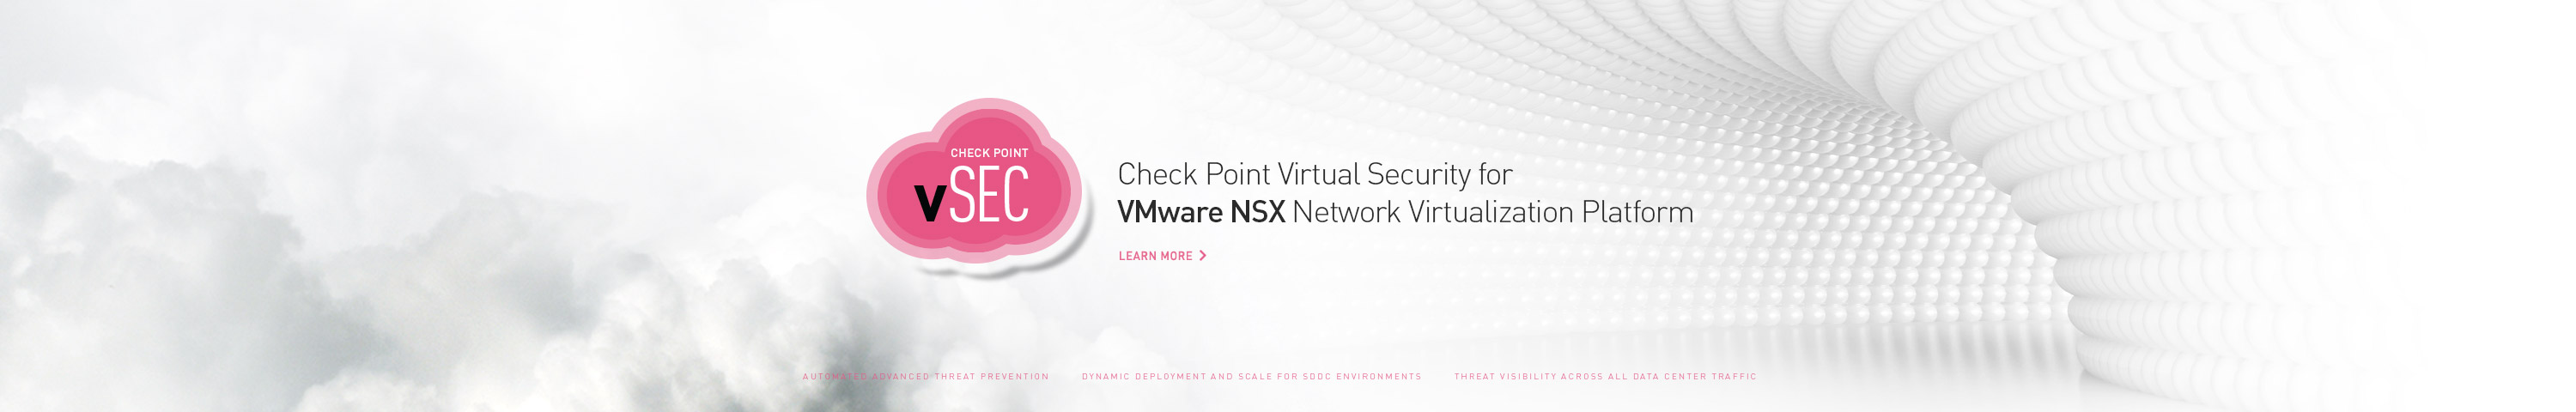 Check Point Virtual Security for VMware NSX Network Virtualization Platform